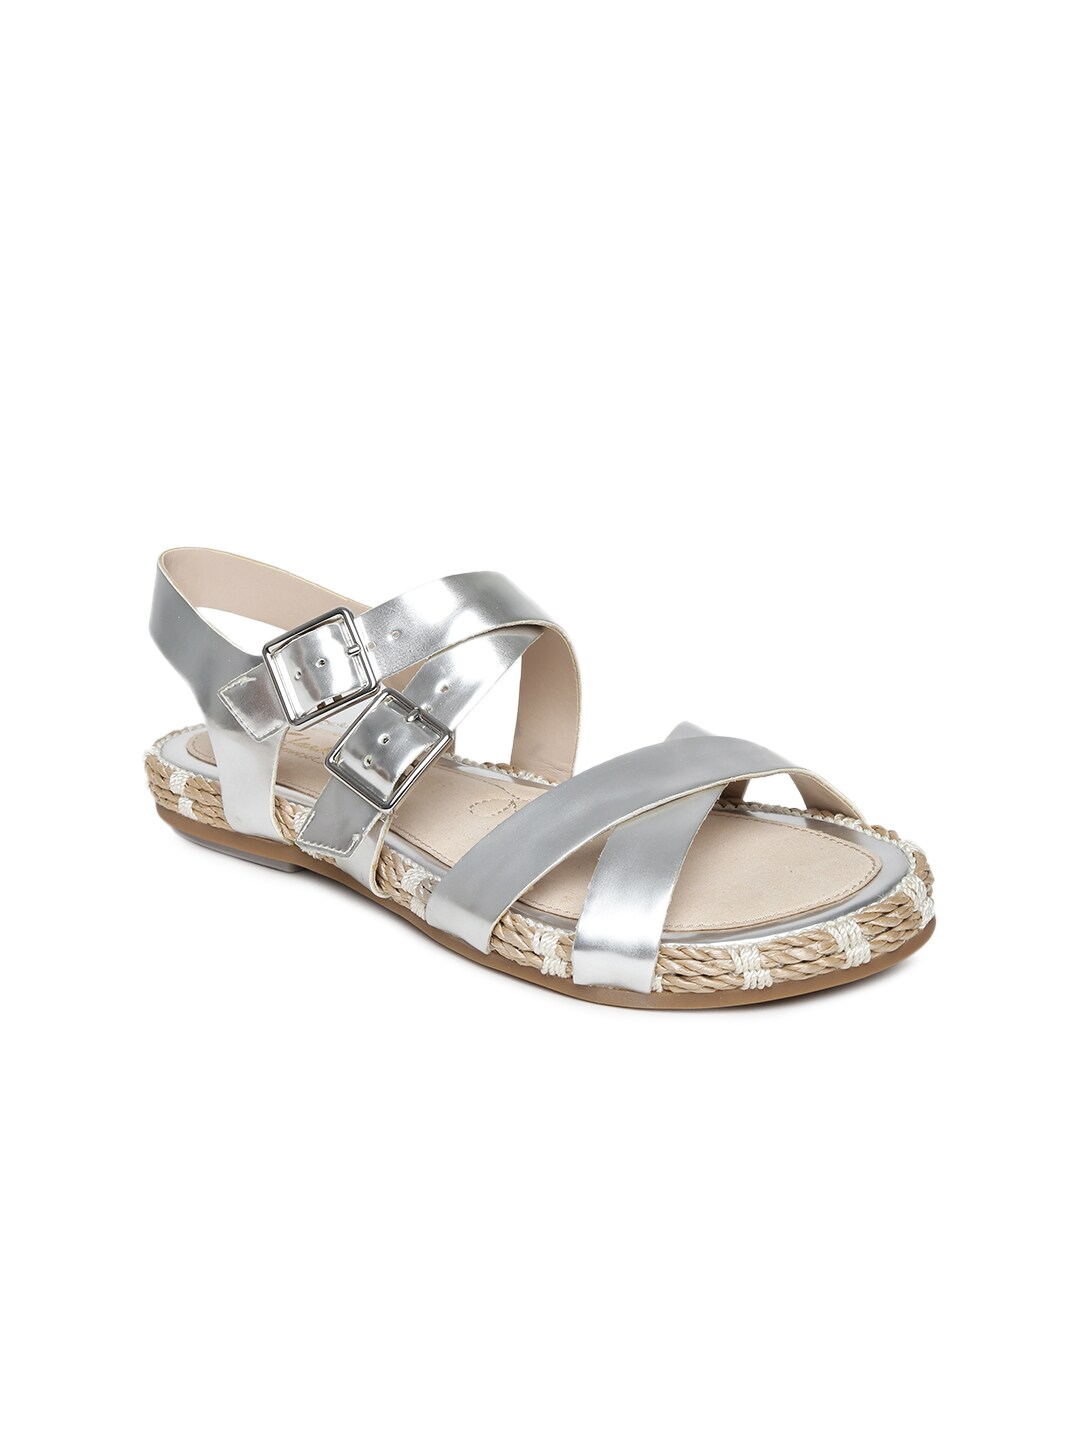 Clarks Women Silver-Toned Leather Sandals